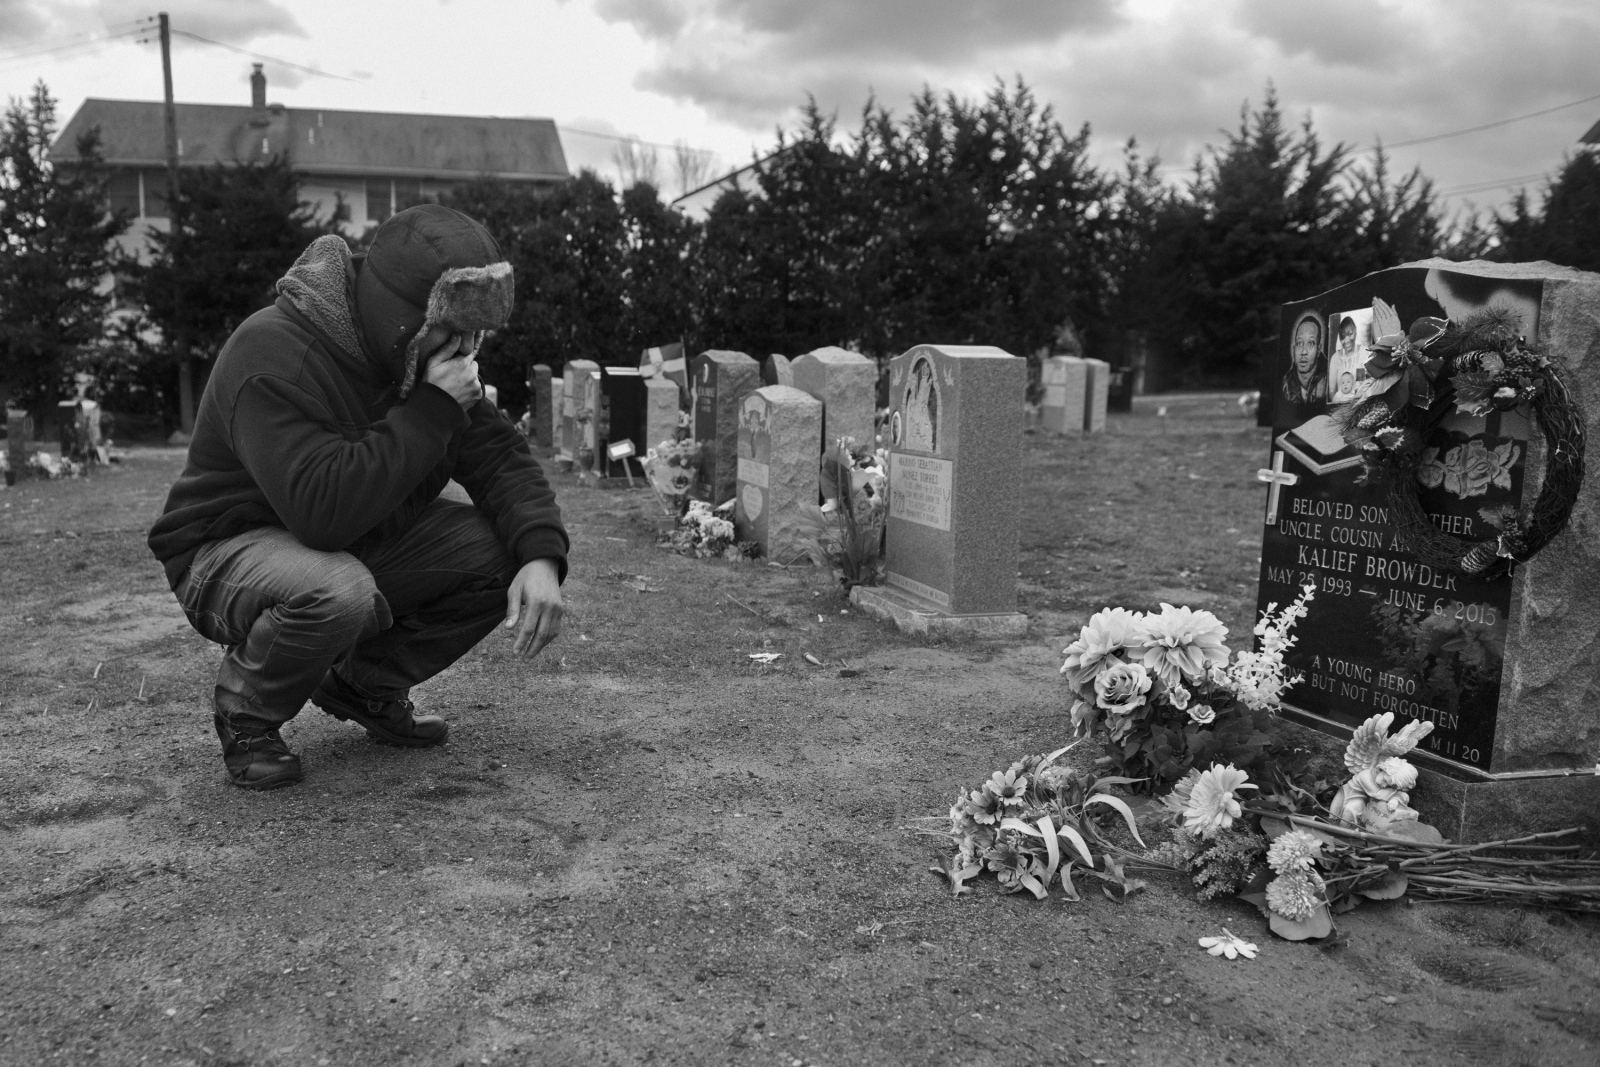 Akeem Browder visits the grave of his brother Kalief and of his mother, VenidaBrowder, who died on October 14th 2016 from a heart attack. Venida was emotionally devasted after Kalief took his own life. She championed the cause of reforming the criminal justice system and made her case known nationwide after asking answers in several tv shows and criminal justice forums.